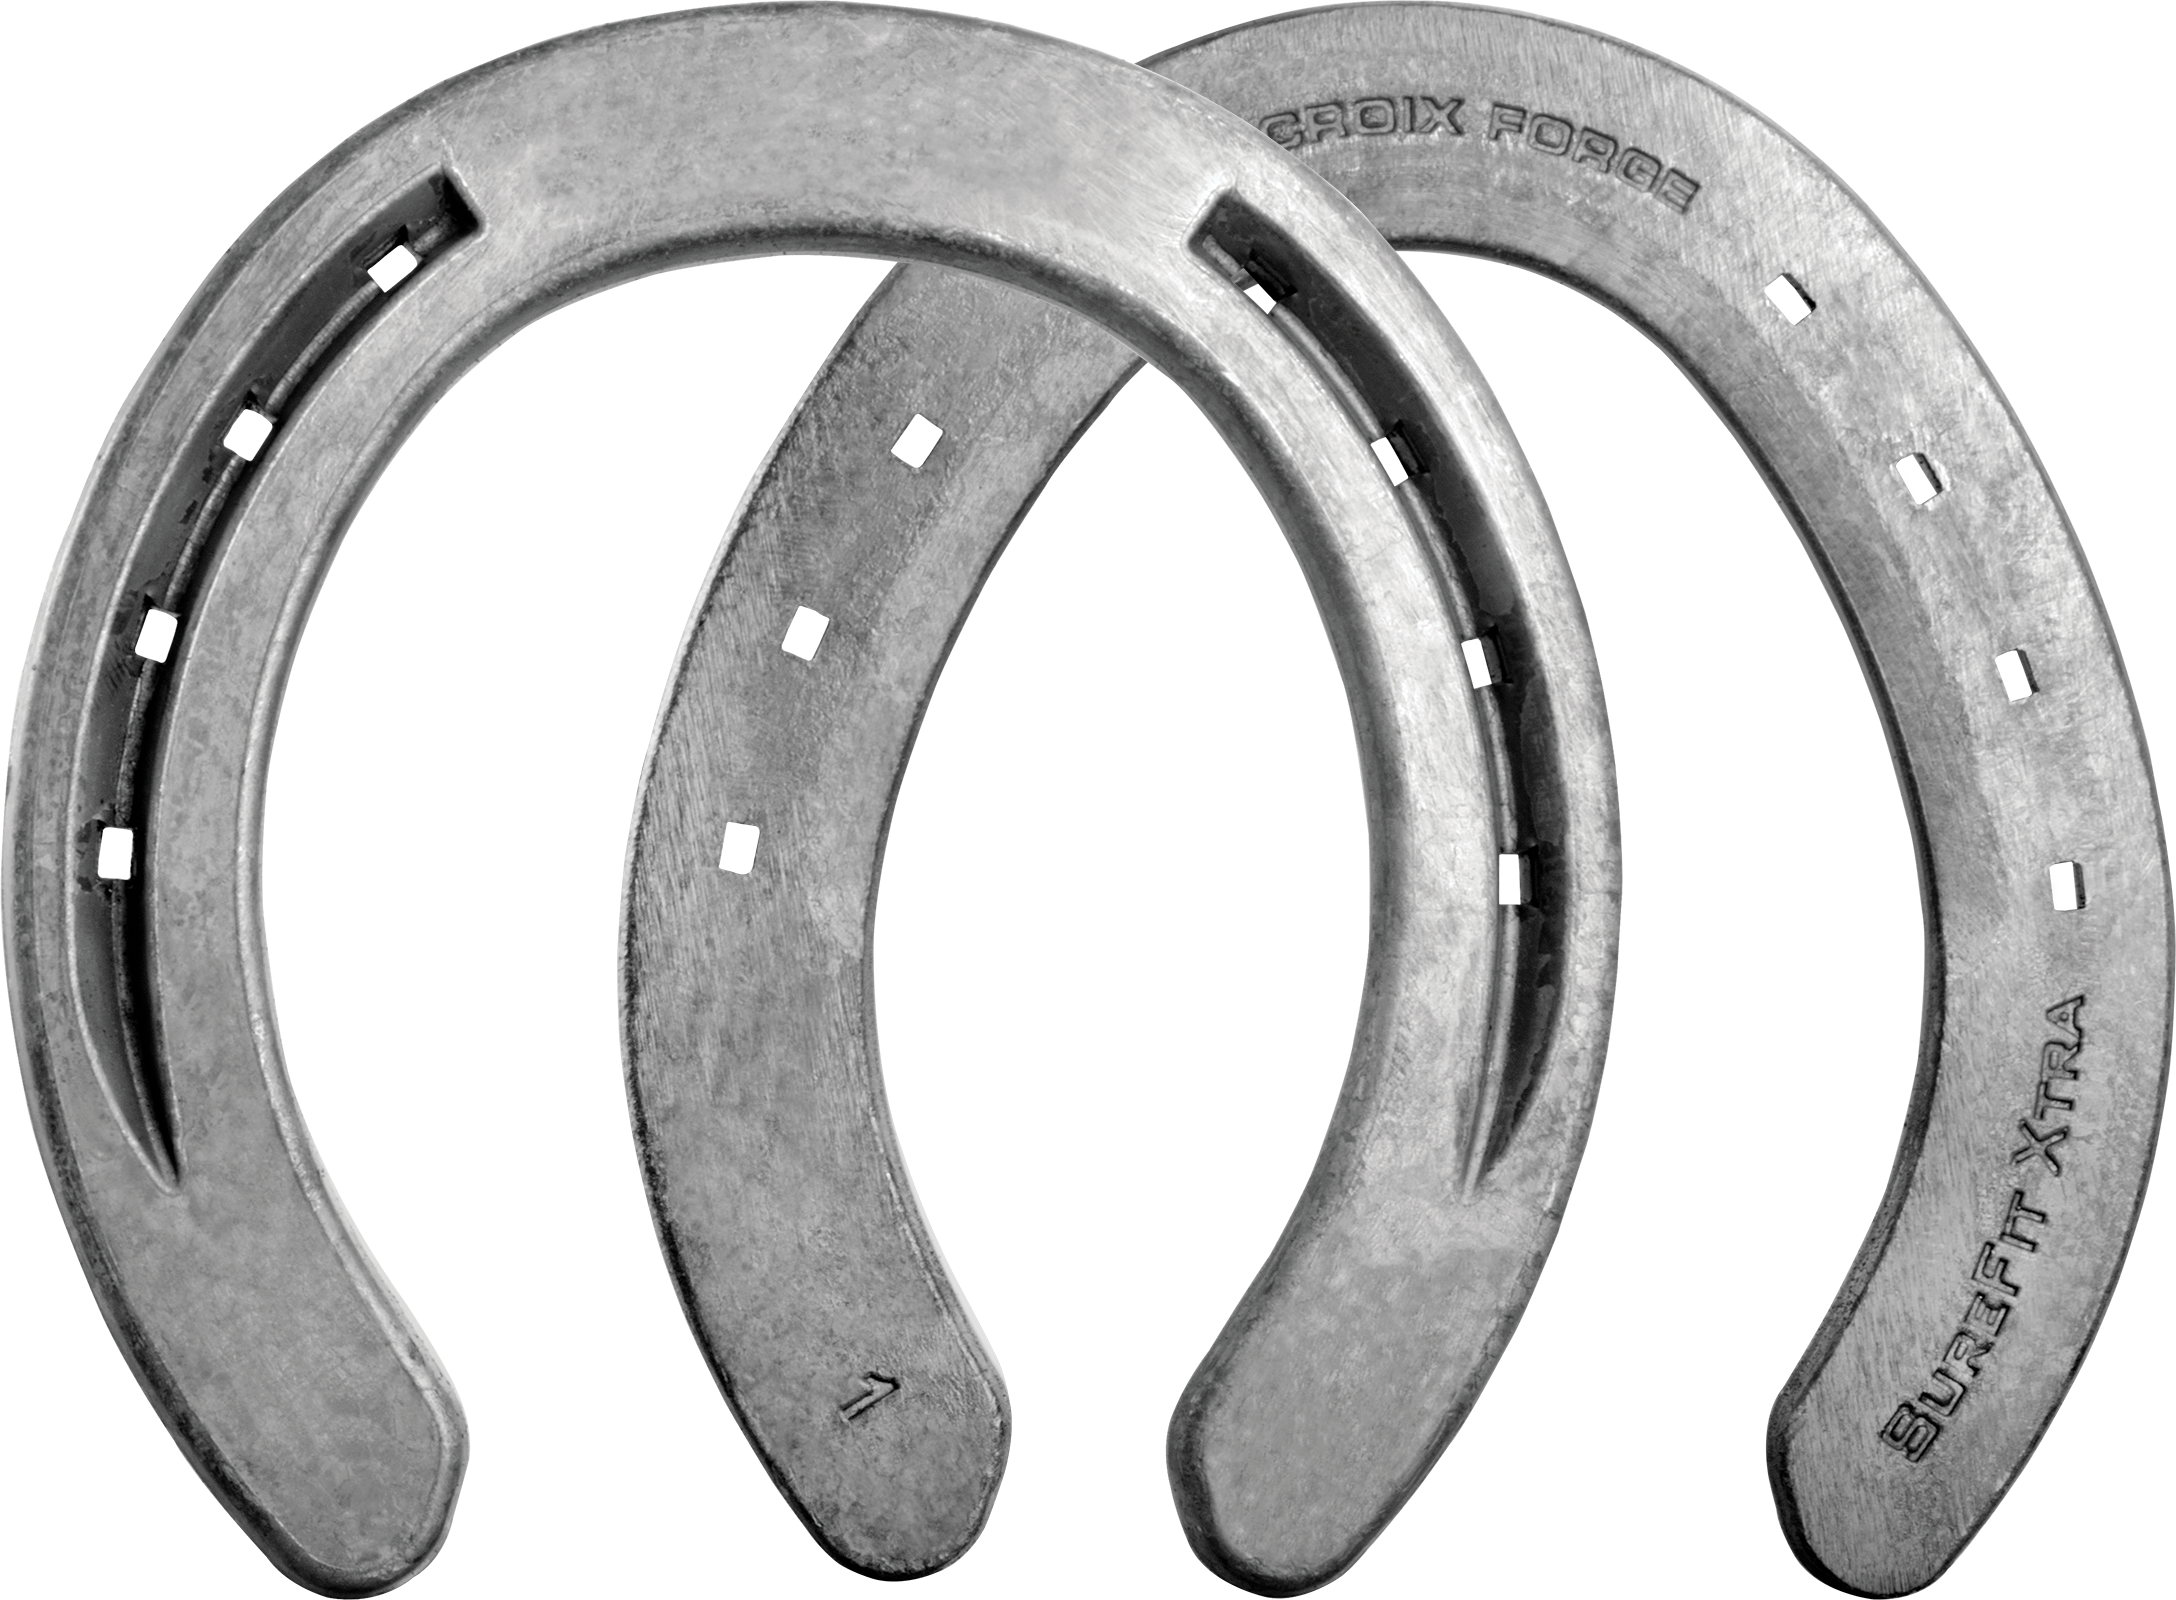 St. Croix Surefit Xtra horseshoes, front bottom, hind hoof side